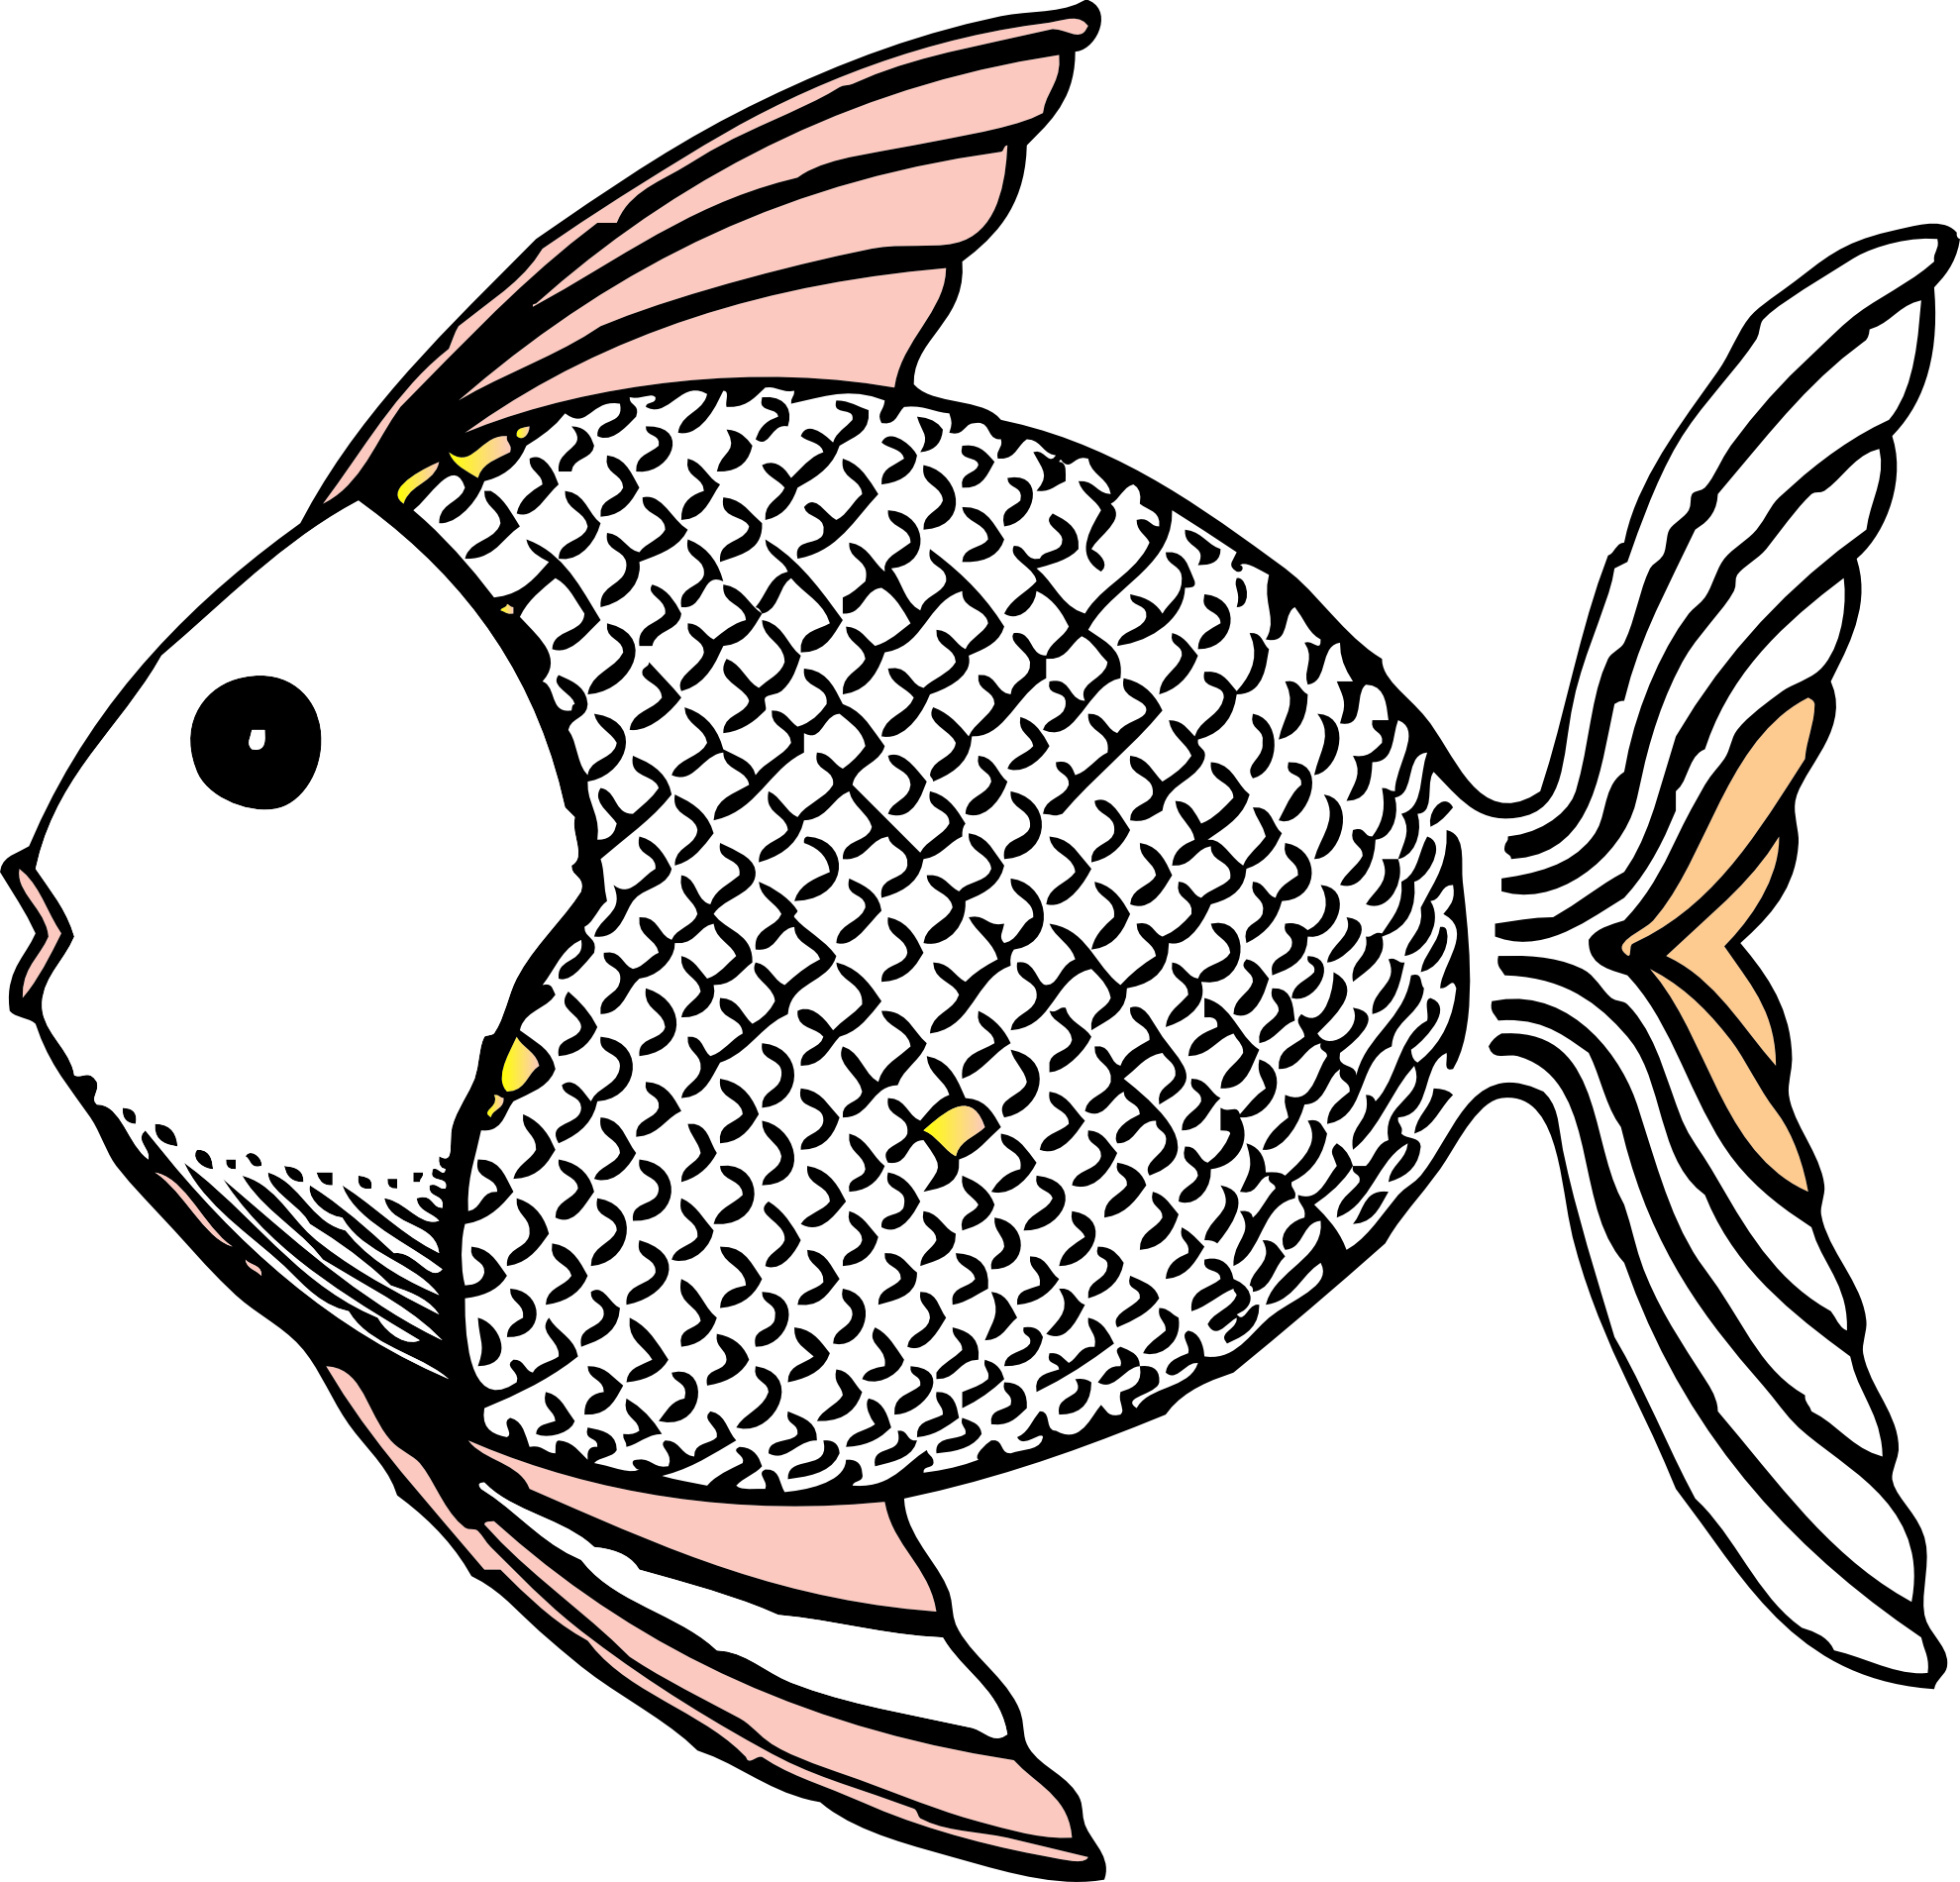 Black and white fish drawings clipart best for Best white fish